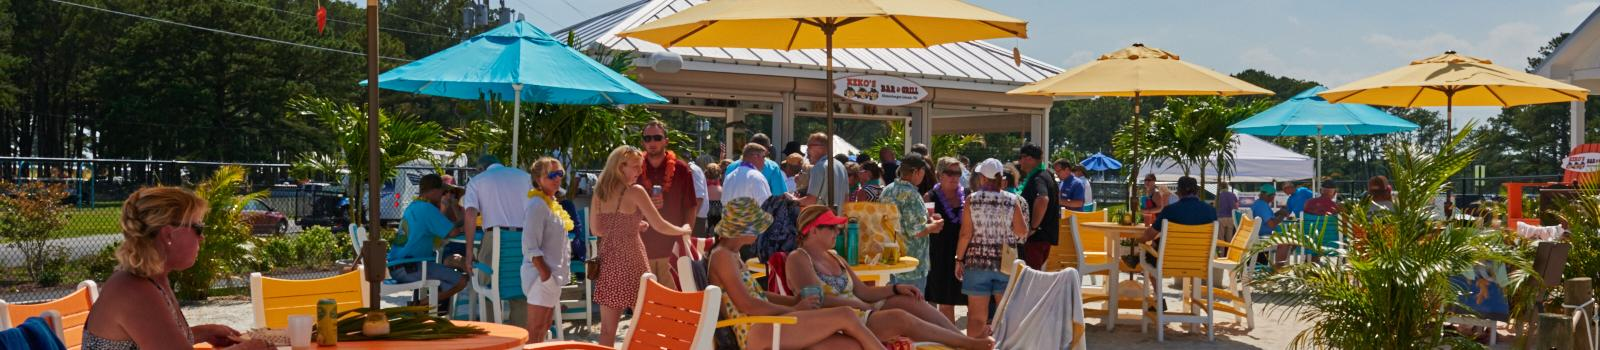 Group of people relaxing at Maui Jack's Waterpark